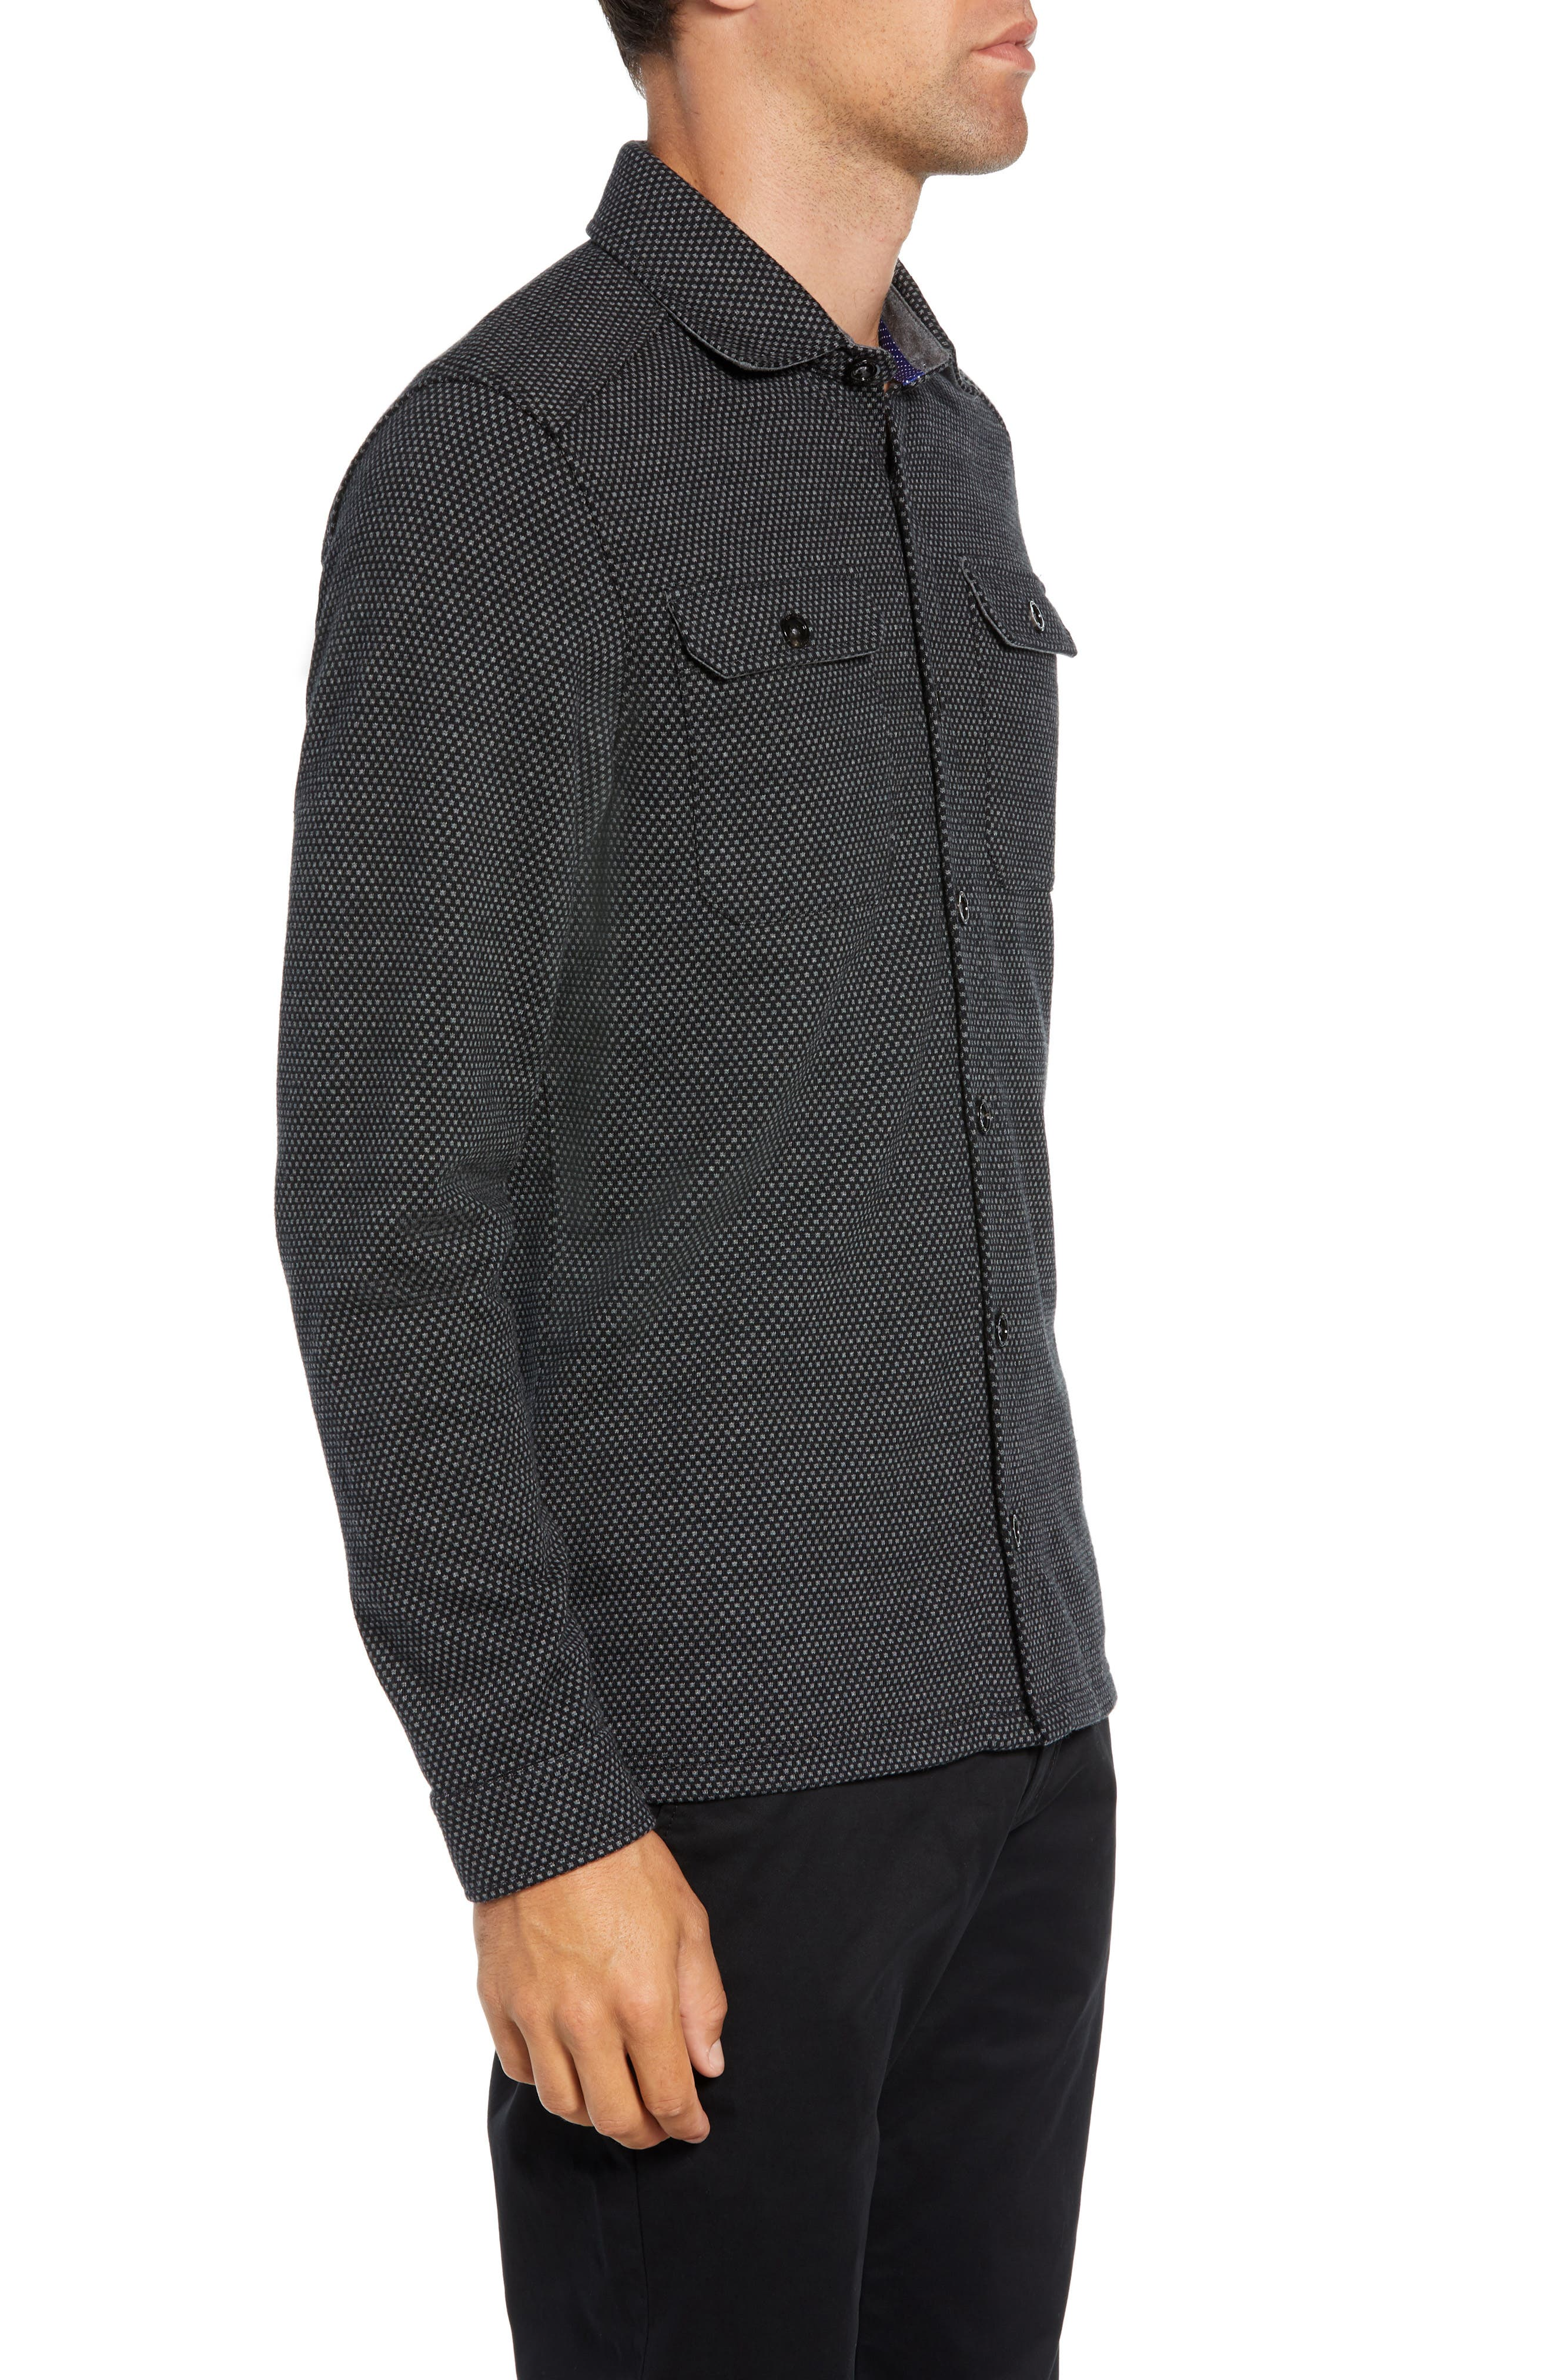 Toolow Trim Fit Solid Sport Shirt,                             Alternate thumbnail 4, color,                             CHARCOAL